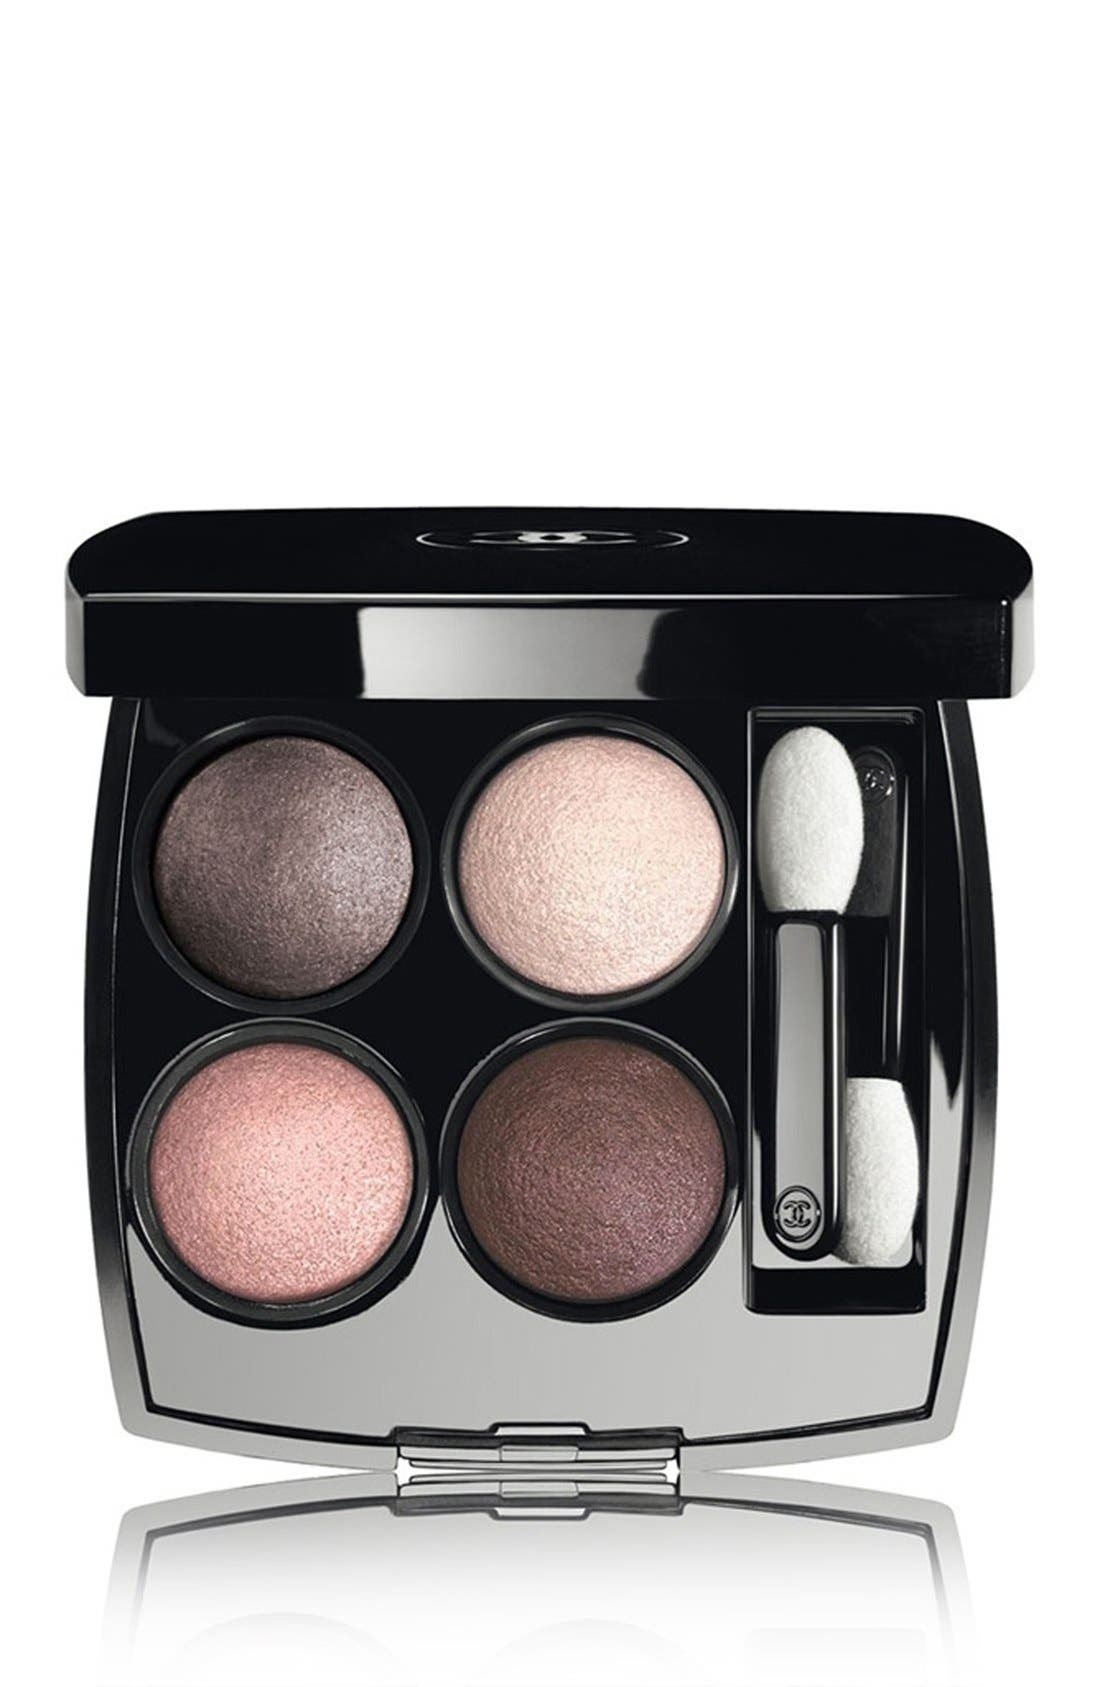 LES 4 OMBRES<br />Multi-Effect Quadra Eyeshadow,                             Main thumbnail 1, color,                             202 TISSE CAMELIA